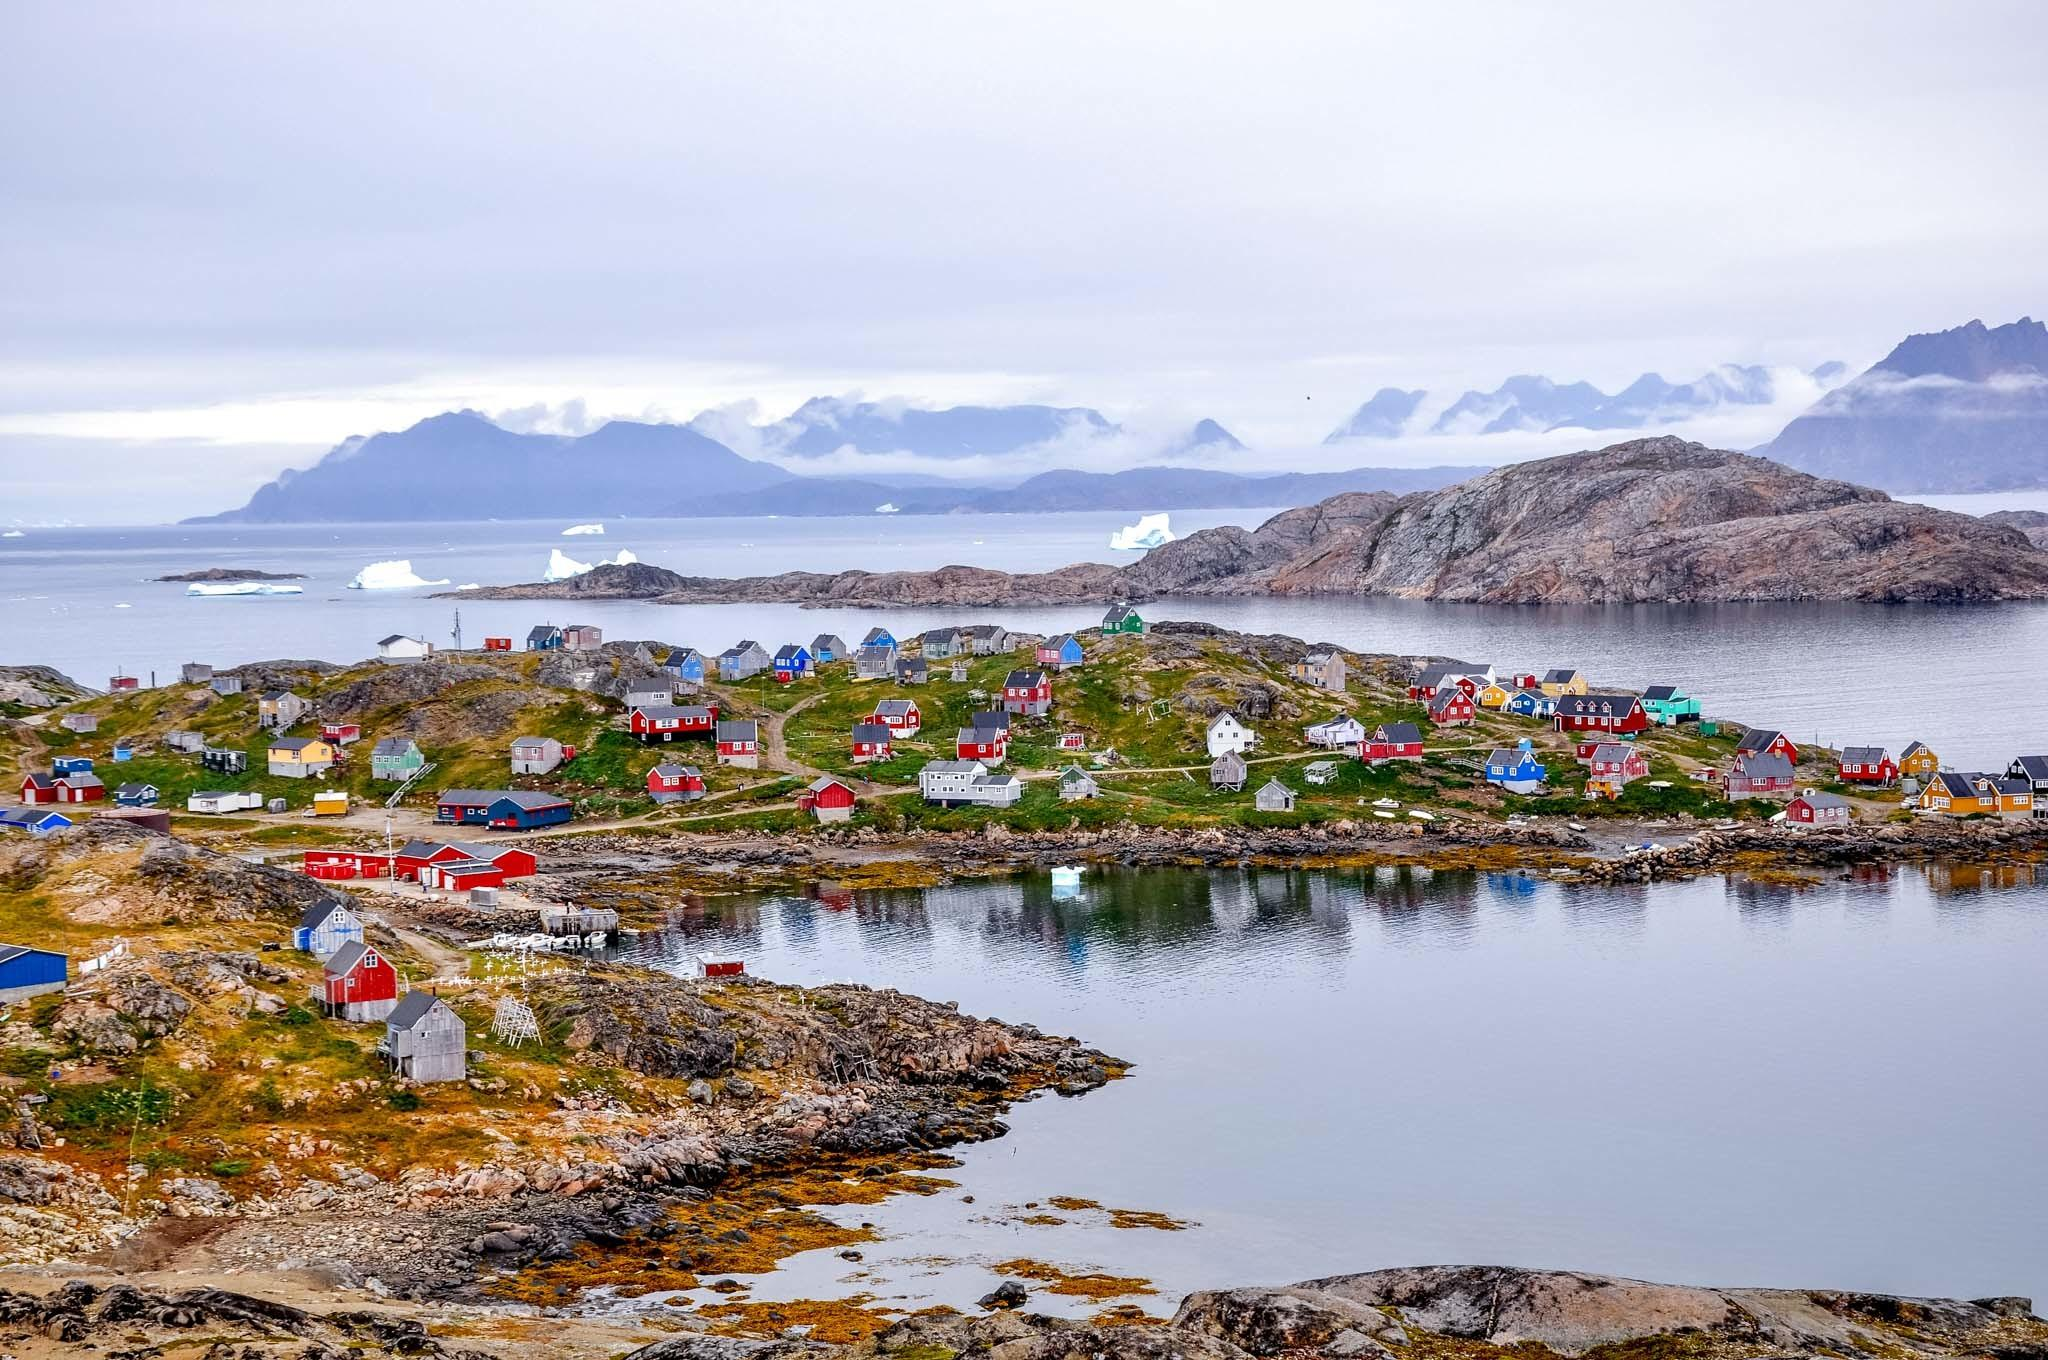 Harbor and colorful homes in Kulusuk, Greenland